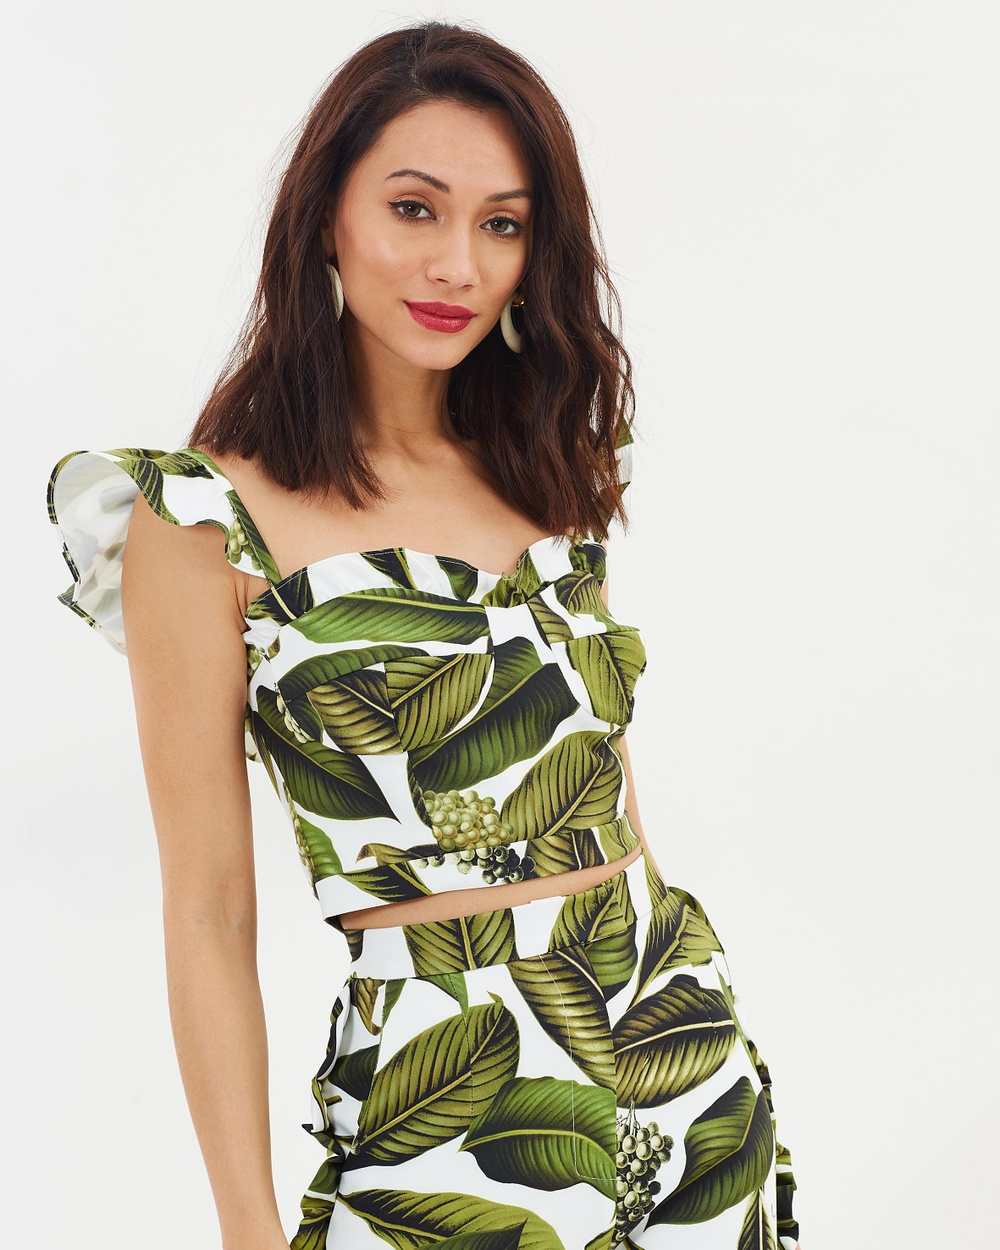 Pasduchas Vineyard Bustier Cropped tops Leaf Vineyard Bustier